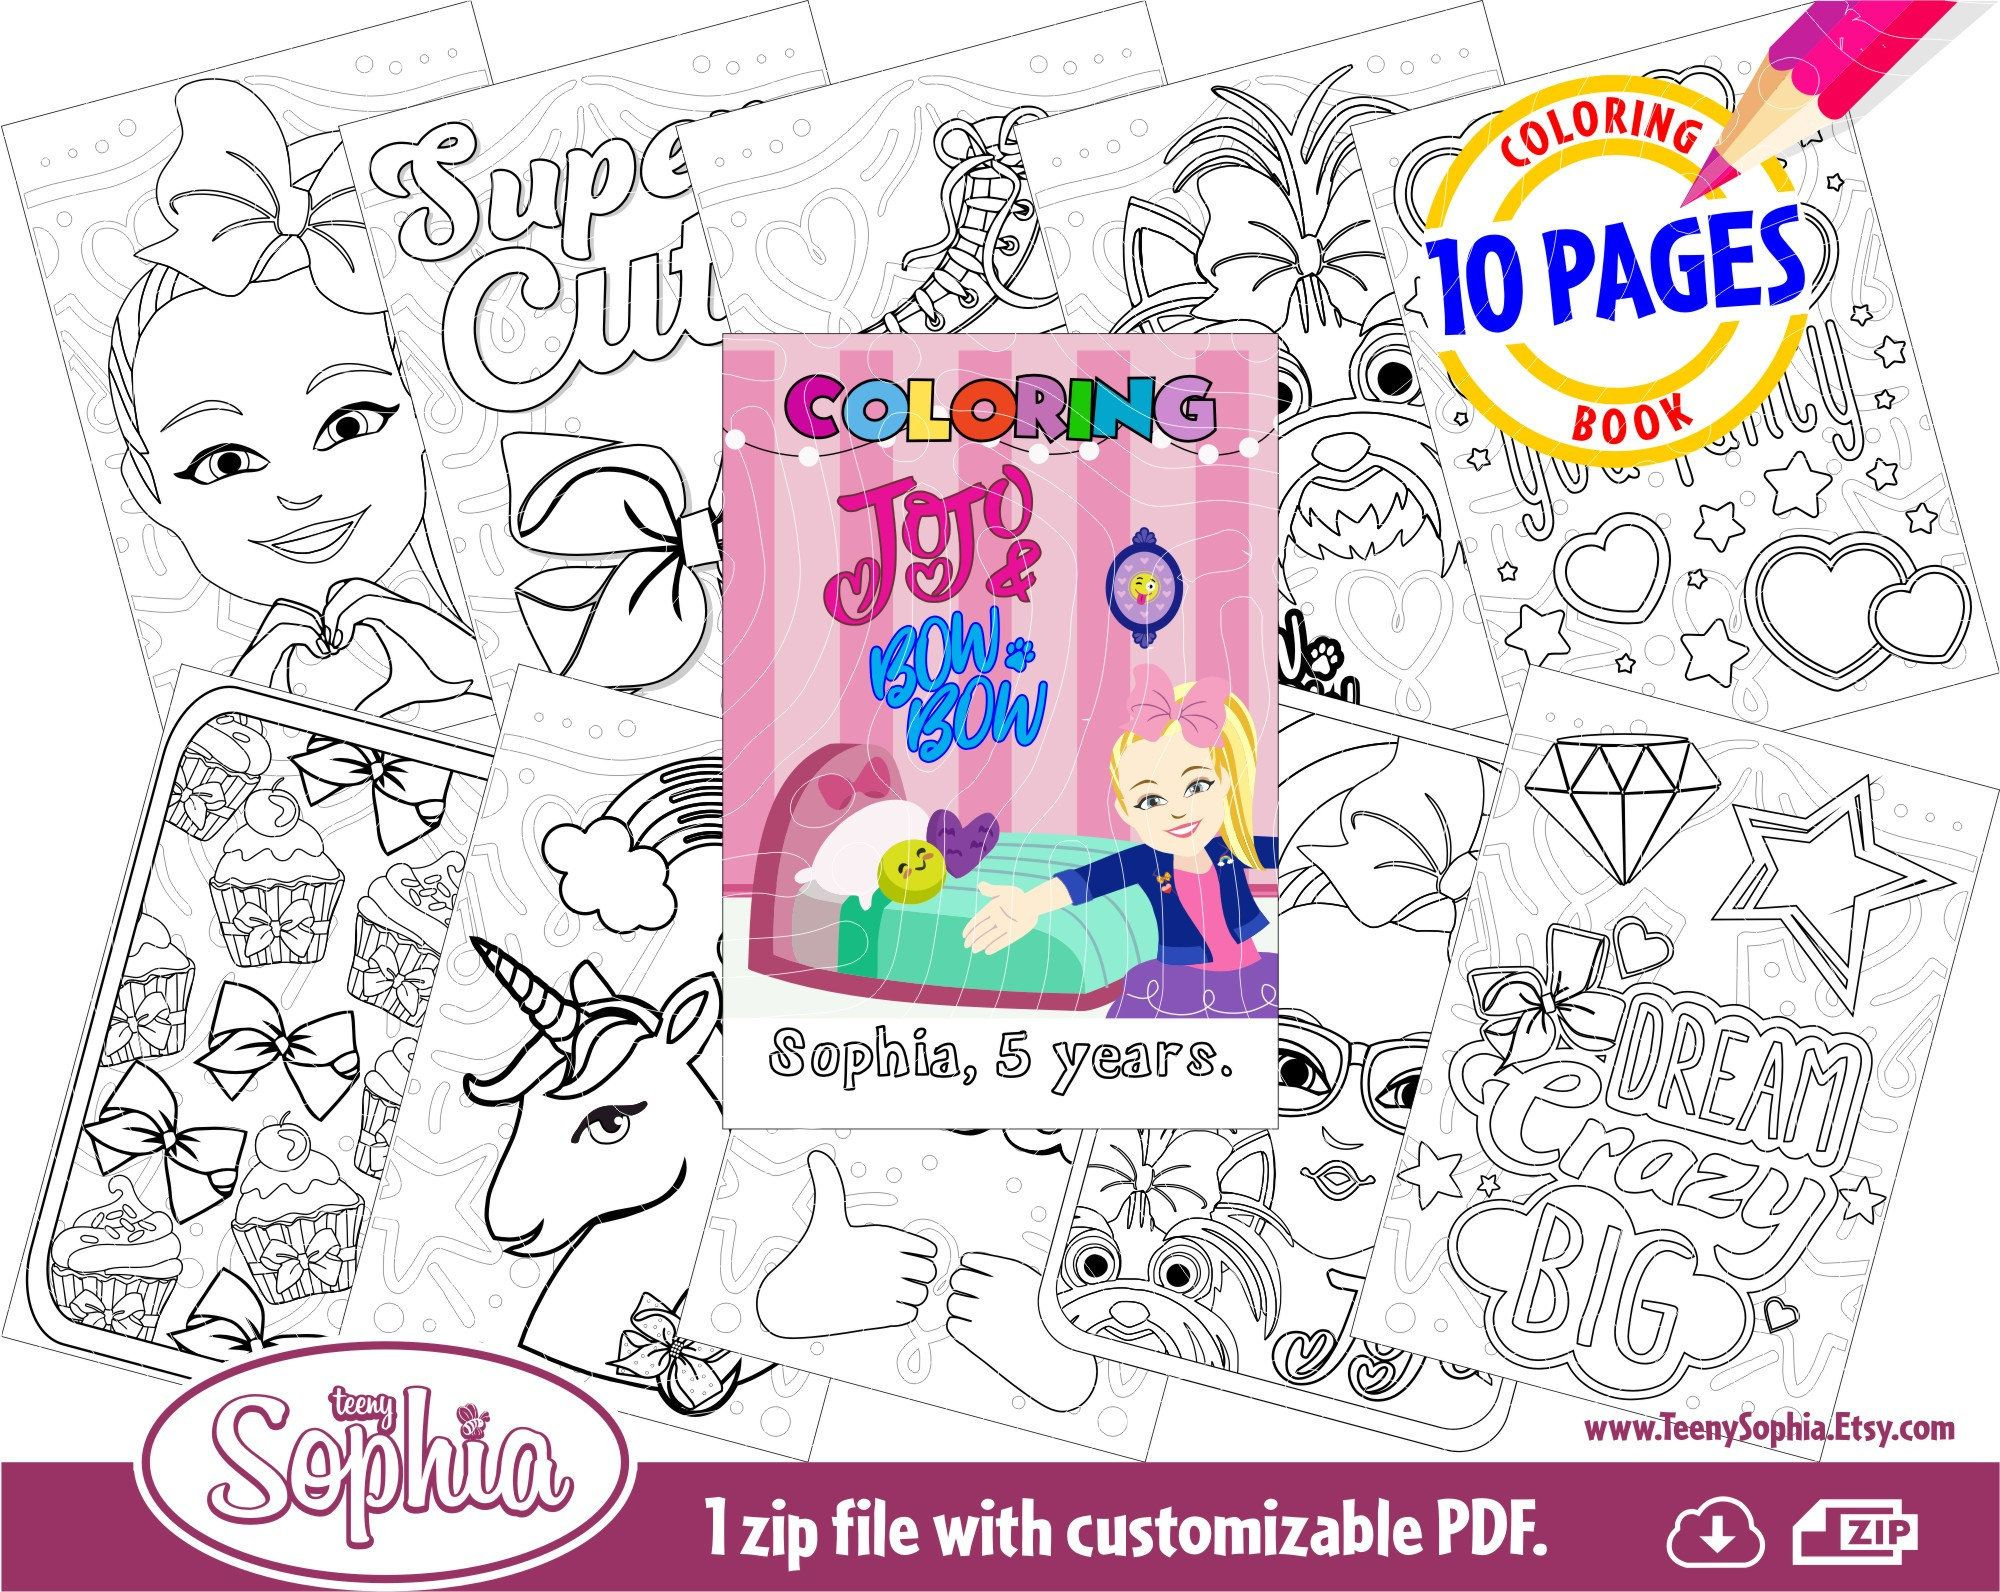 Jojo Siwa And Bow Bow Coloring Pages 10 Pages Pdf Digital File Personalized Coloring Book Craft Projects Coloring Pages